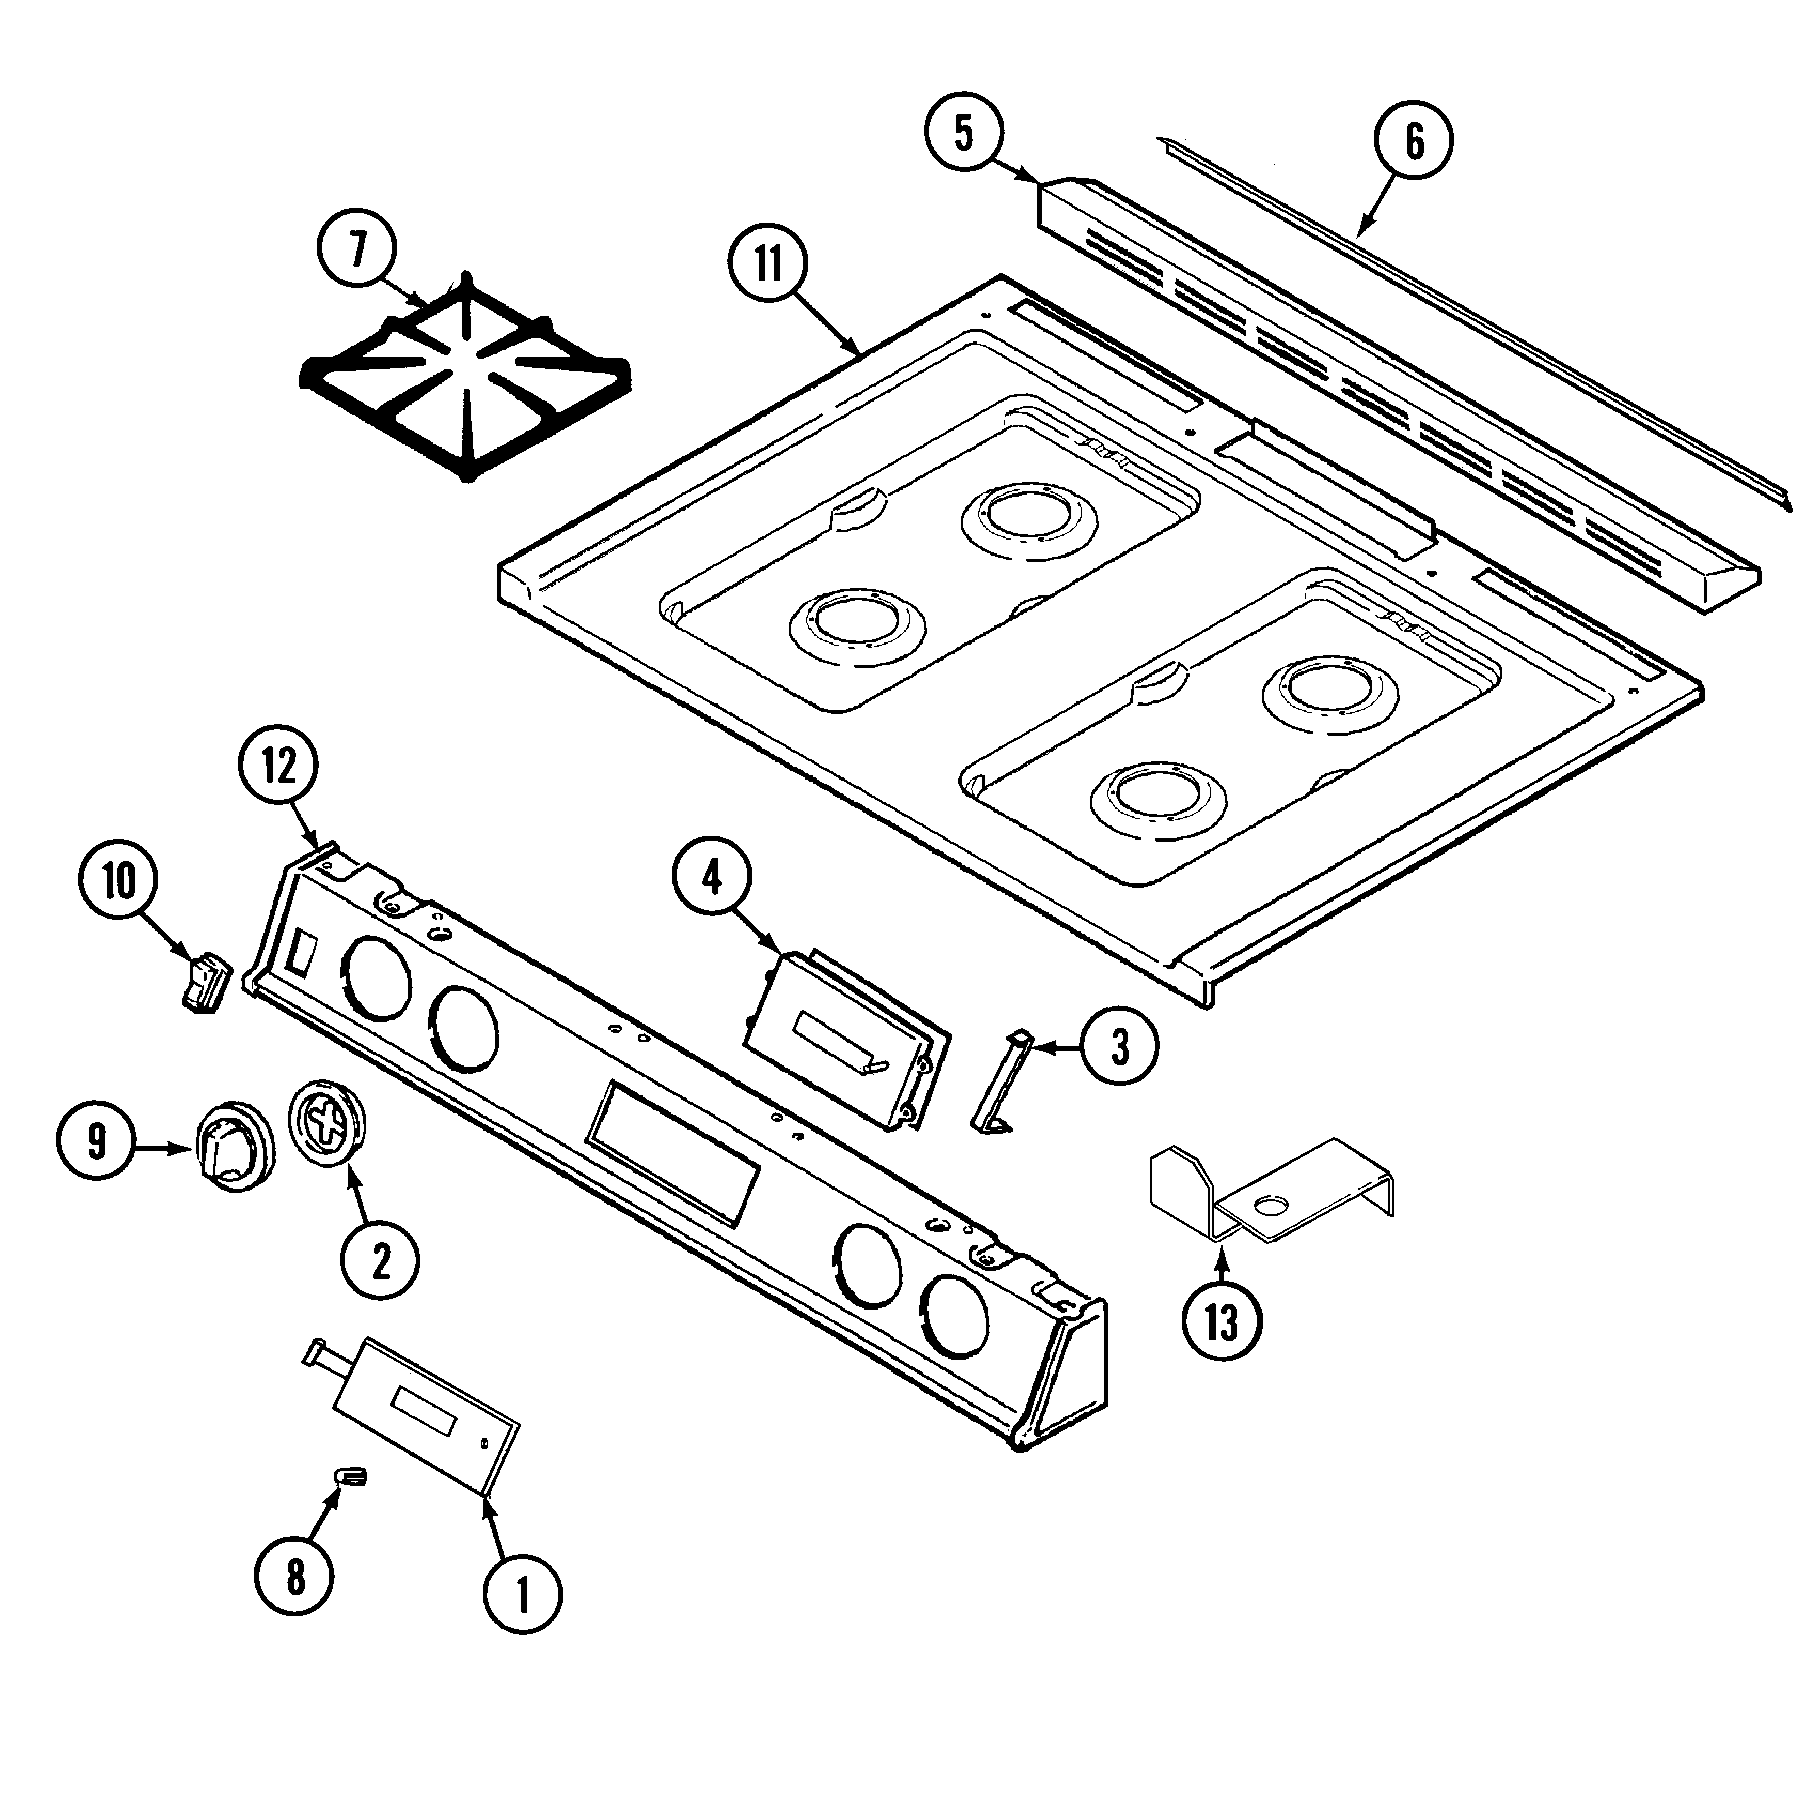 6498vra gas range top assembly parts diagram